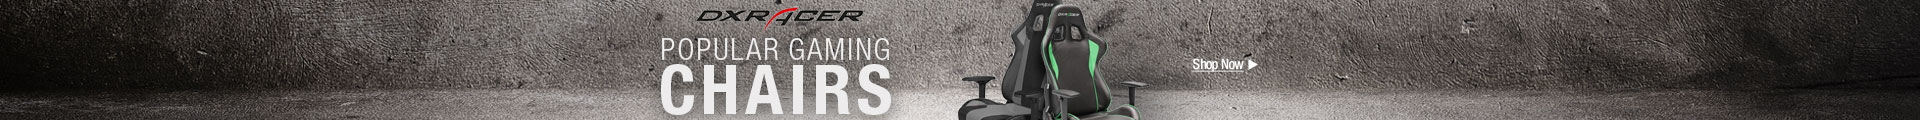 Popular Gaming Chairs